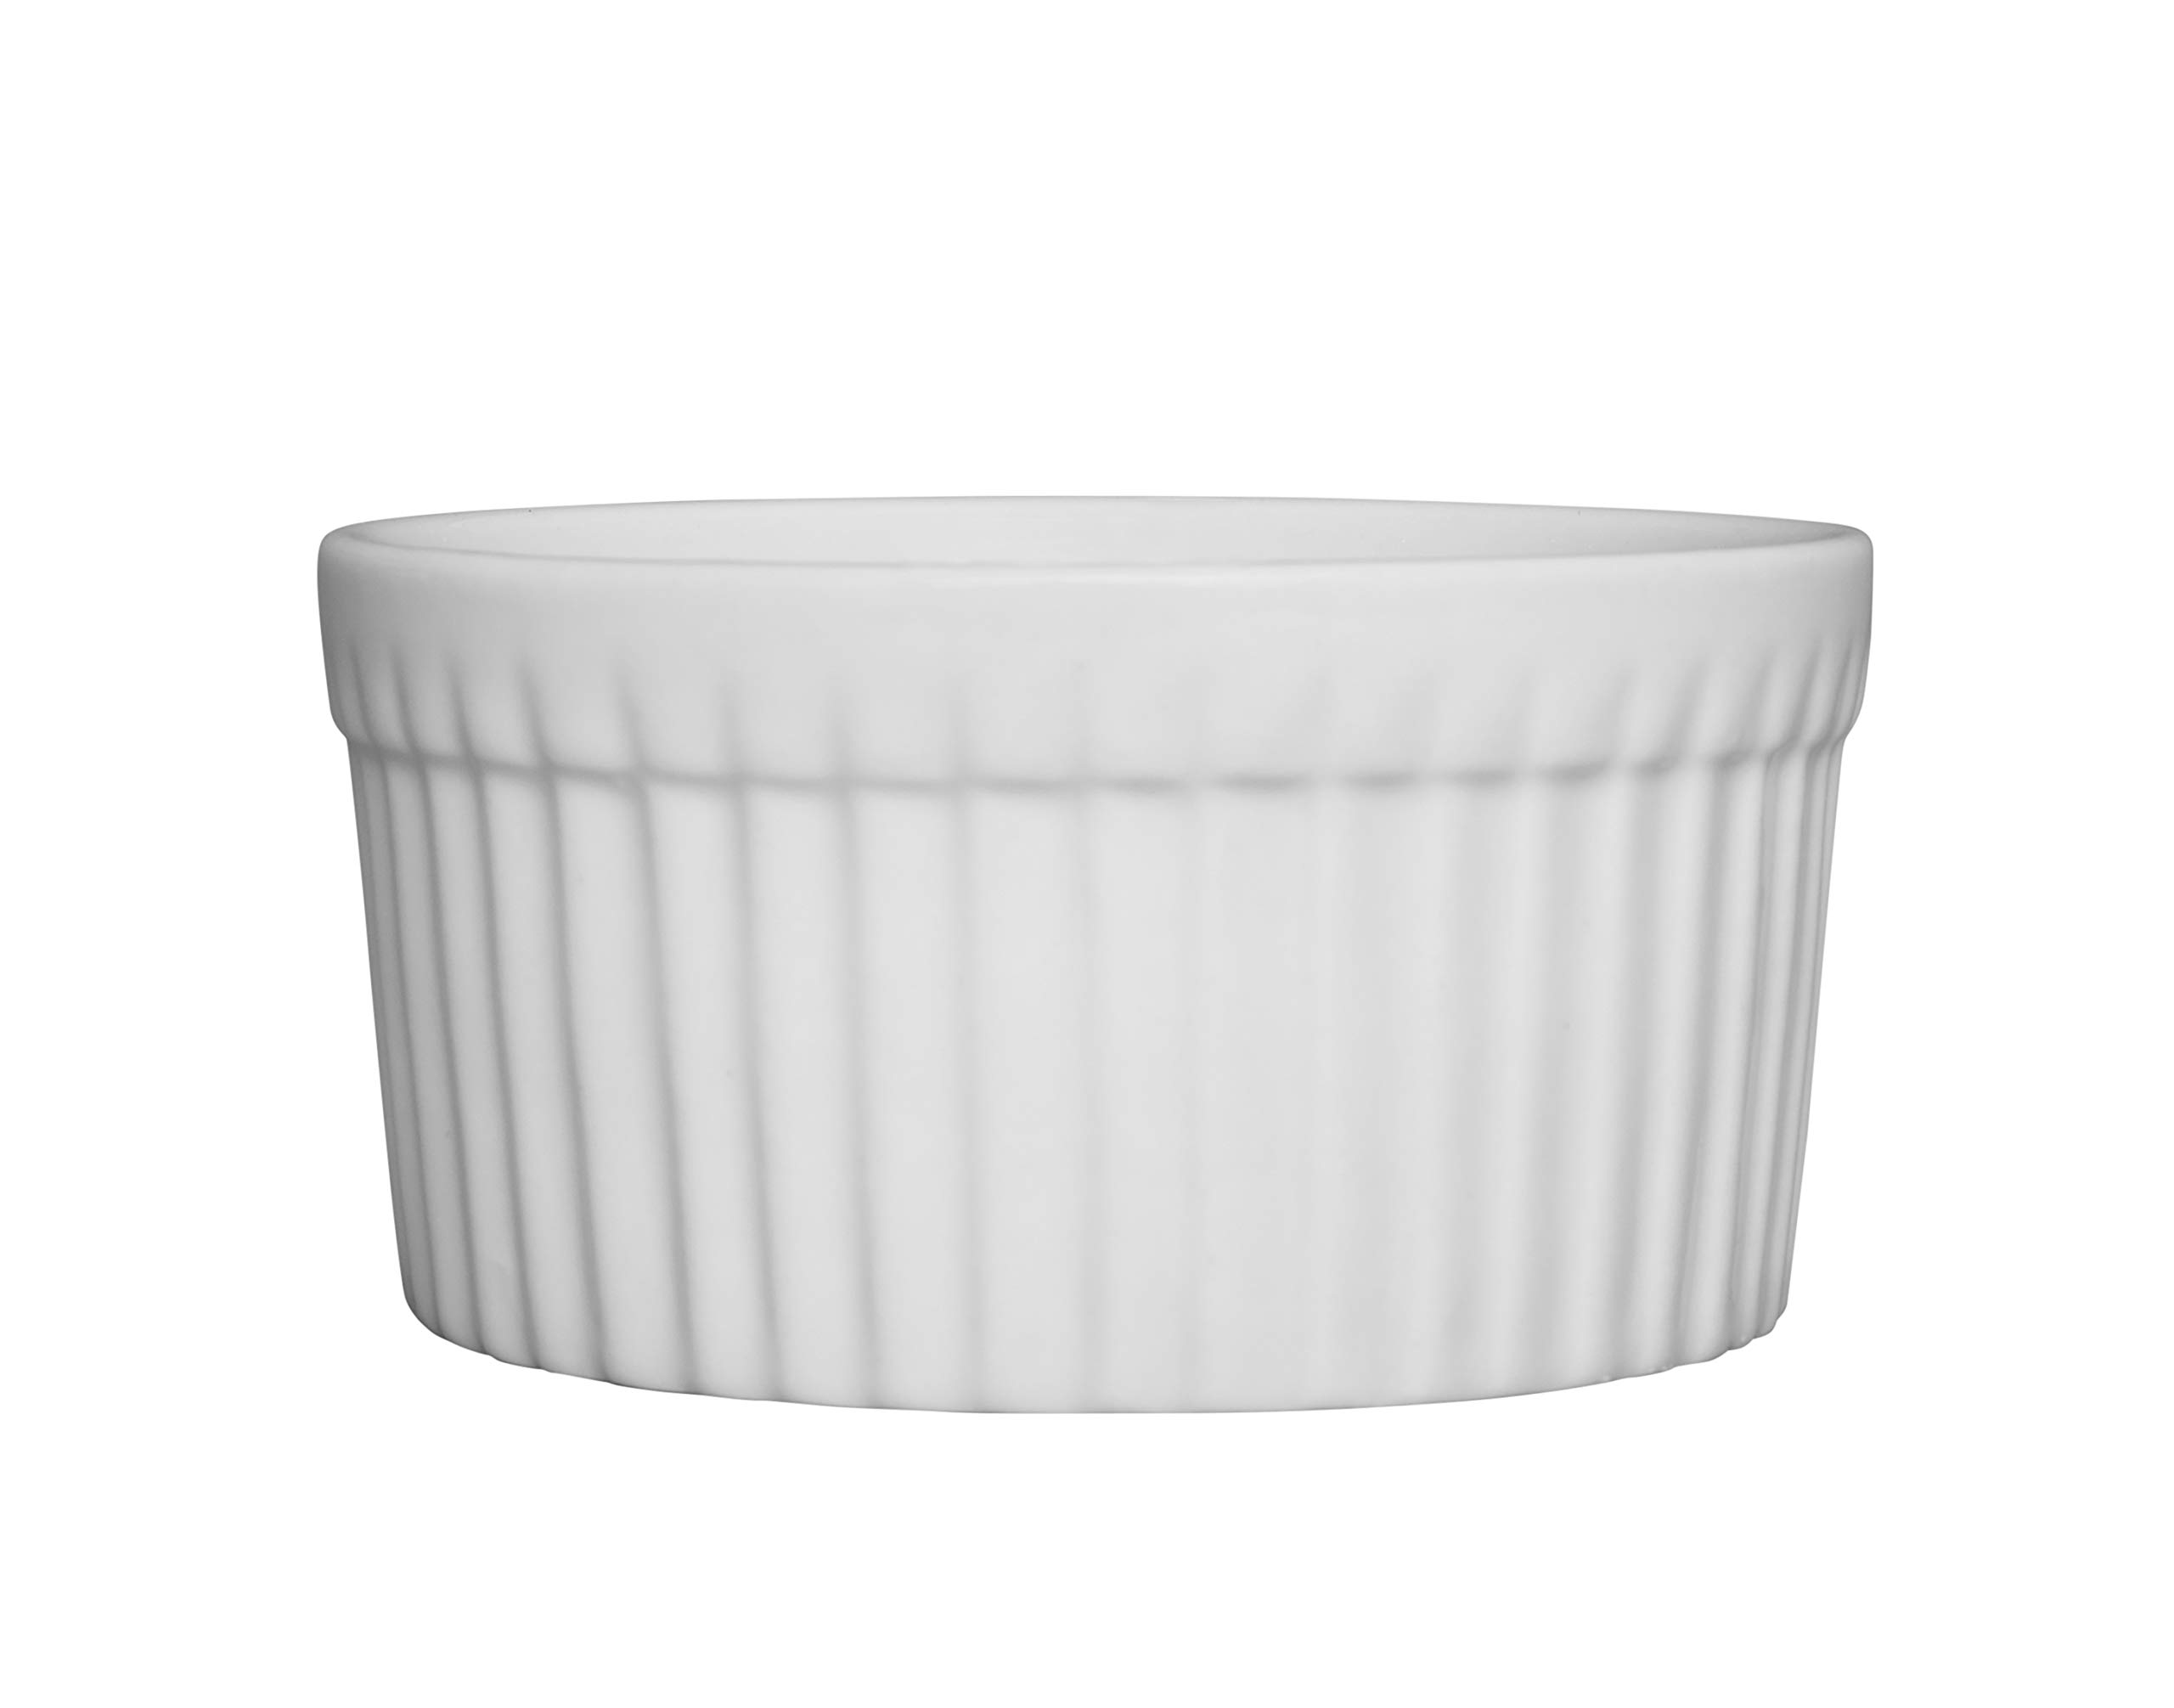 Chef Expressions 3.27'' x 1.57'' Fluted Ramekin - Souffle Dish, 5-ounce Capacity, Restaurant Quality, Vitrified Bright White Porcelain (Case of 12)